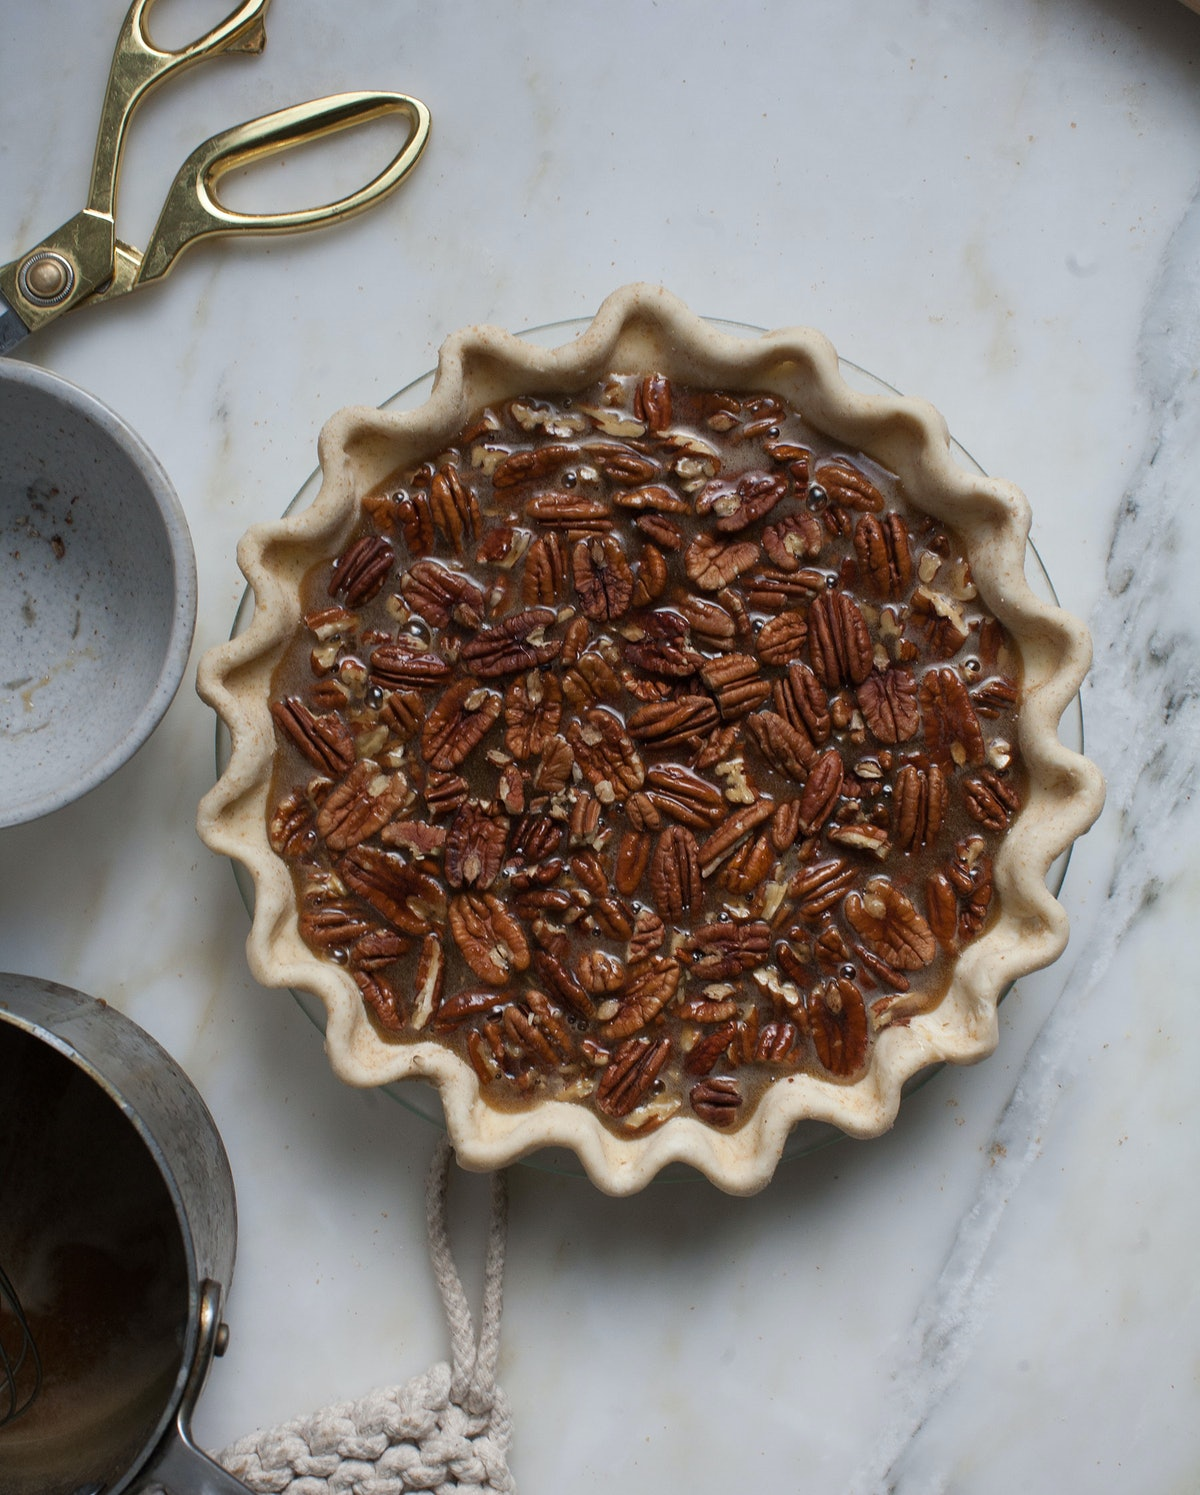 11 Easy Pecan Pie Recipes For Thanksgiving 2016 That Are Sure To Impress